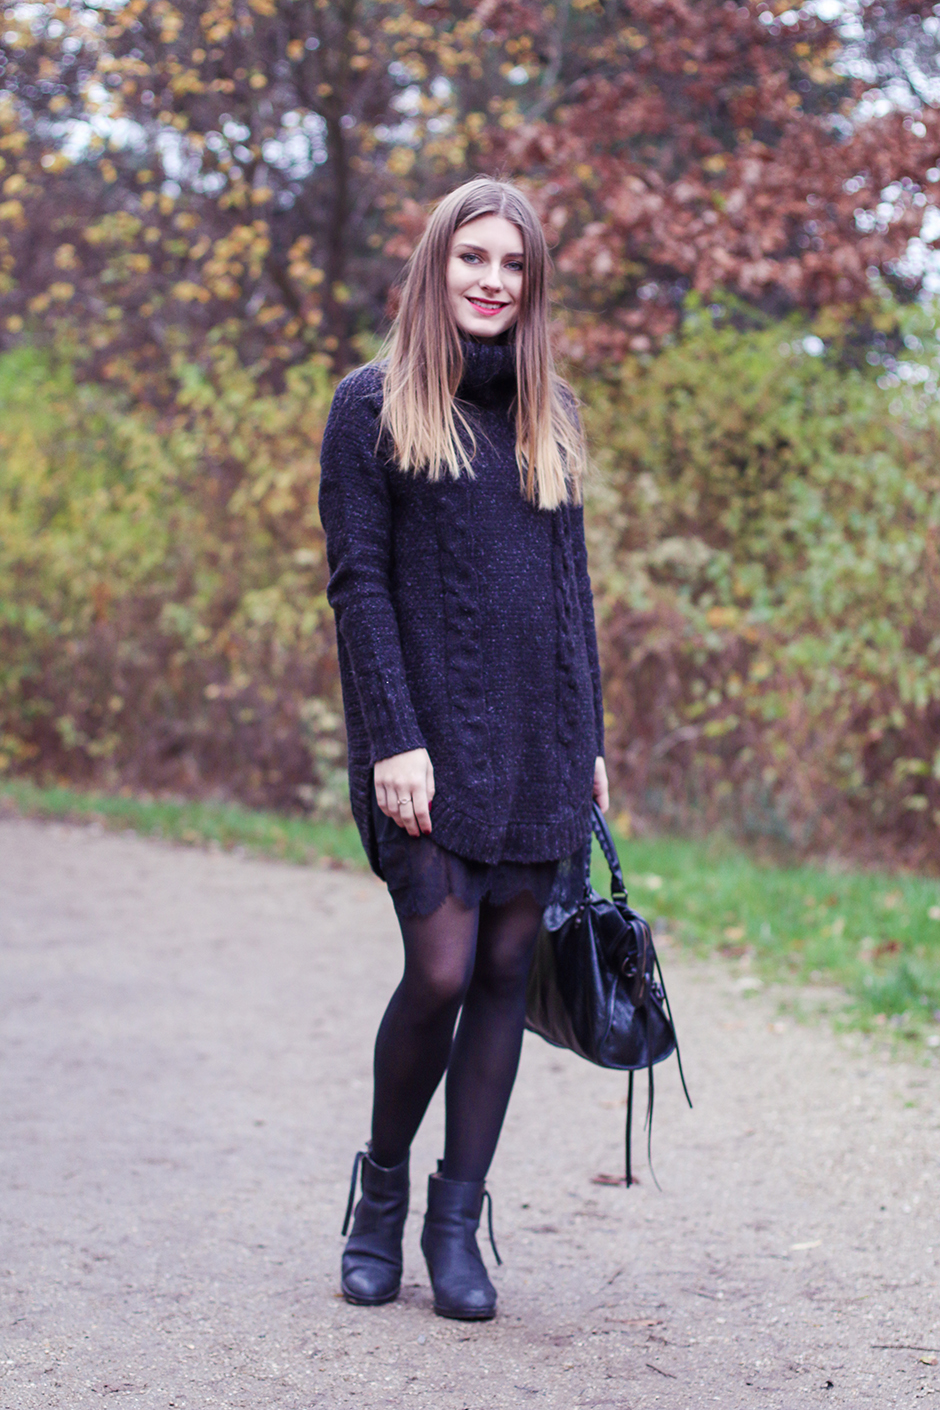 Turtle_Neck_and_Lace_1